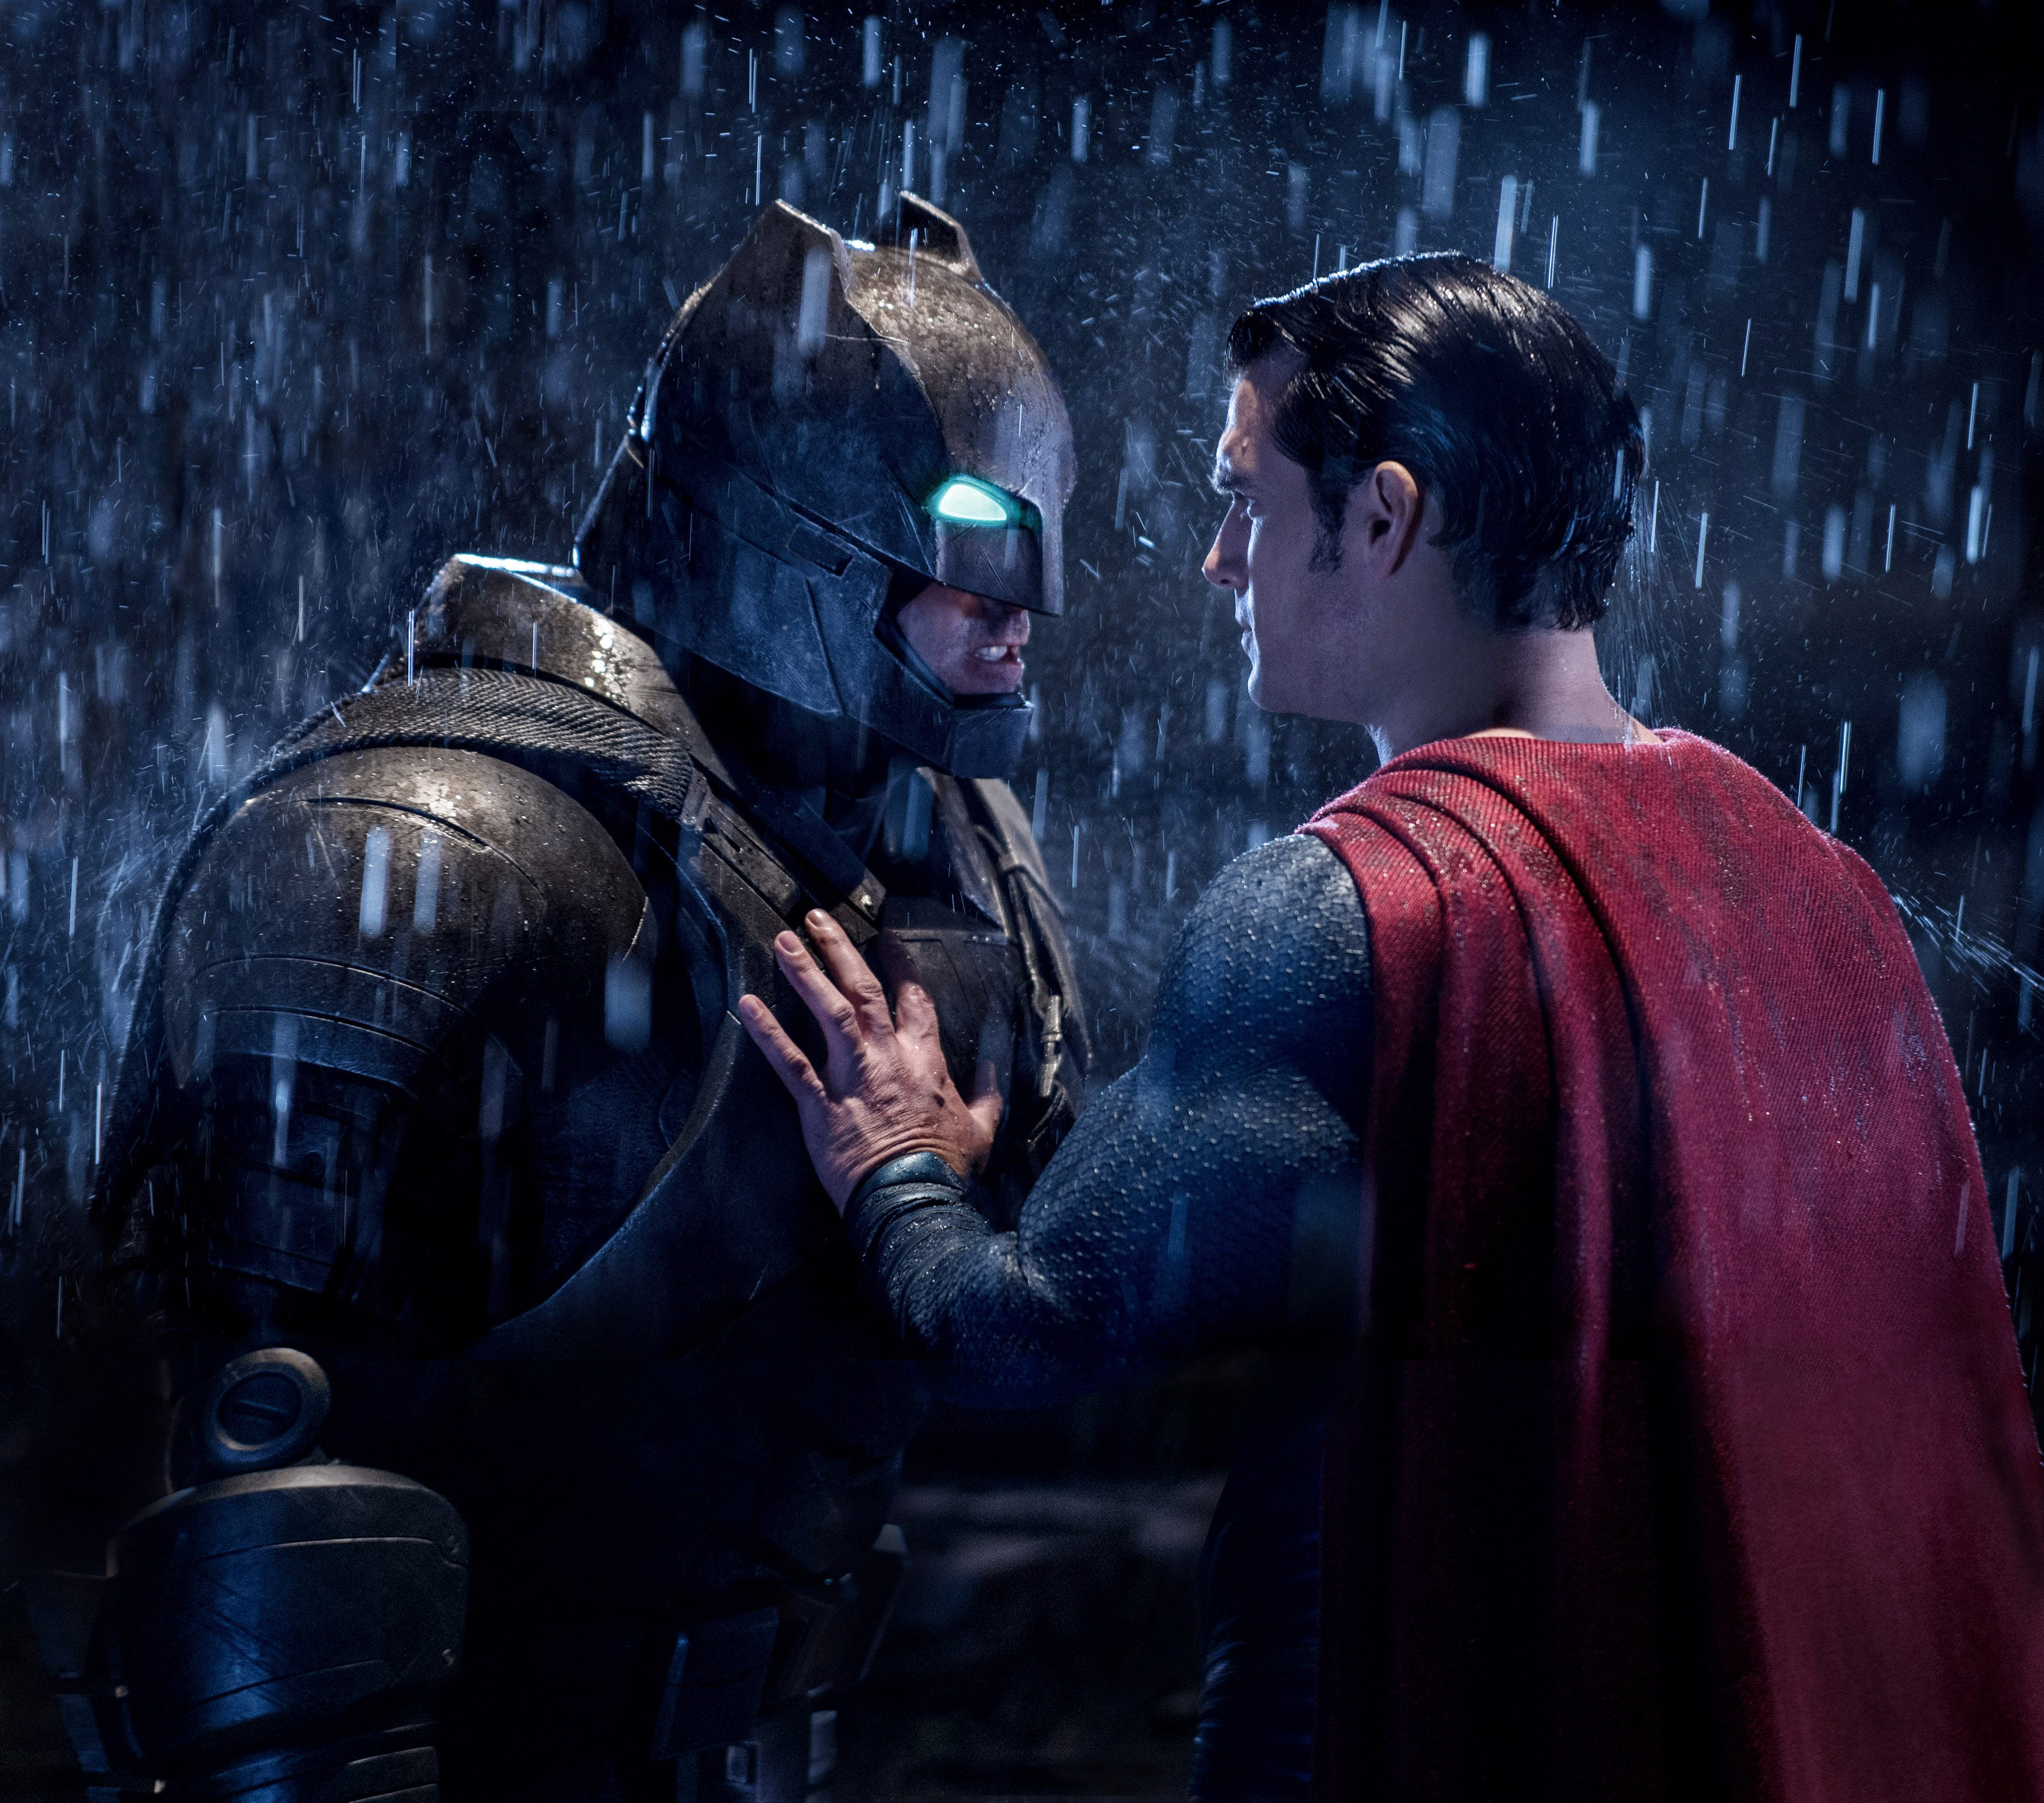 'Batman v Superman,' 'Hillary's America' tie for most Razzie Awards